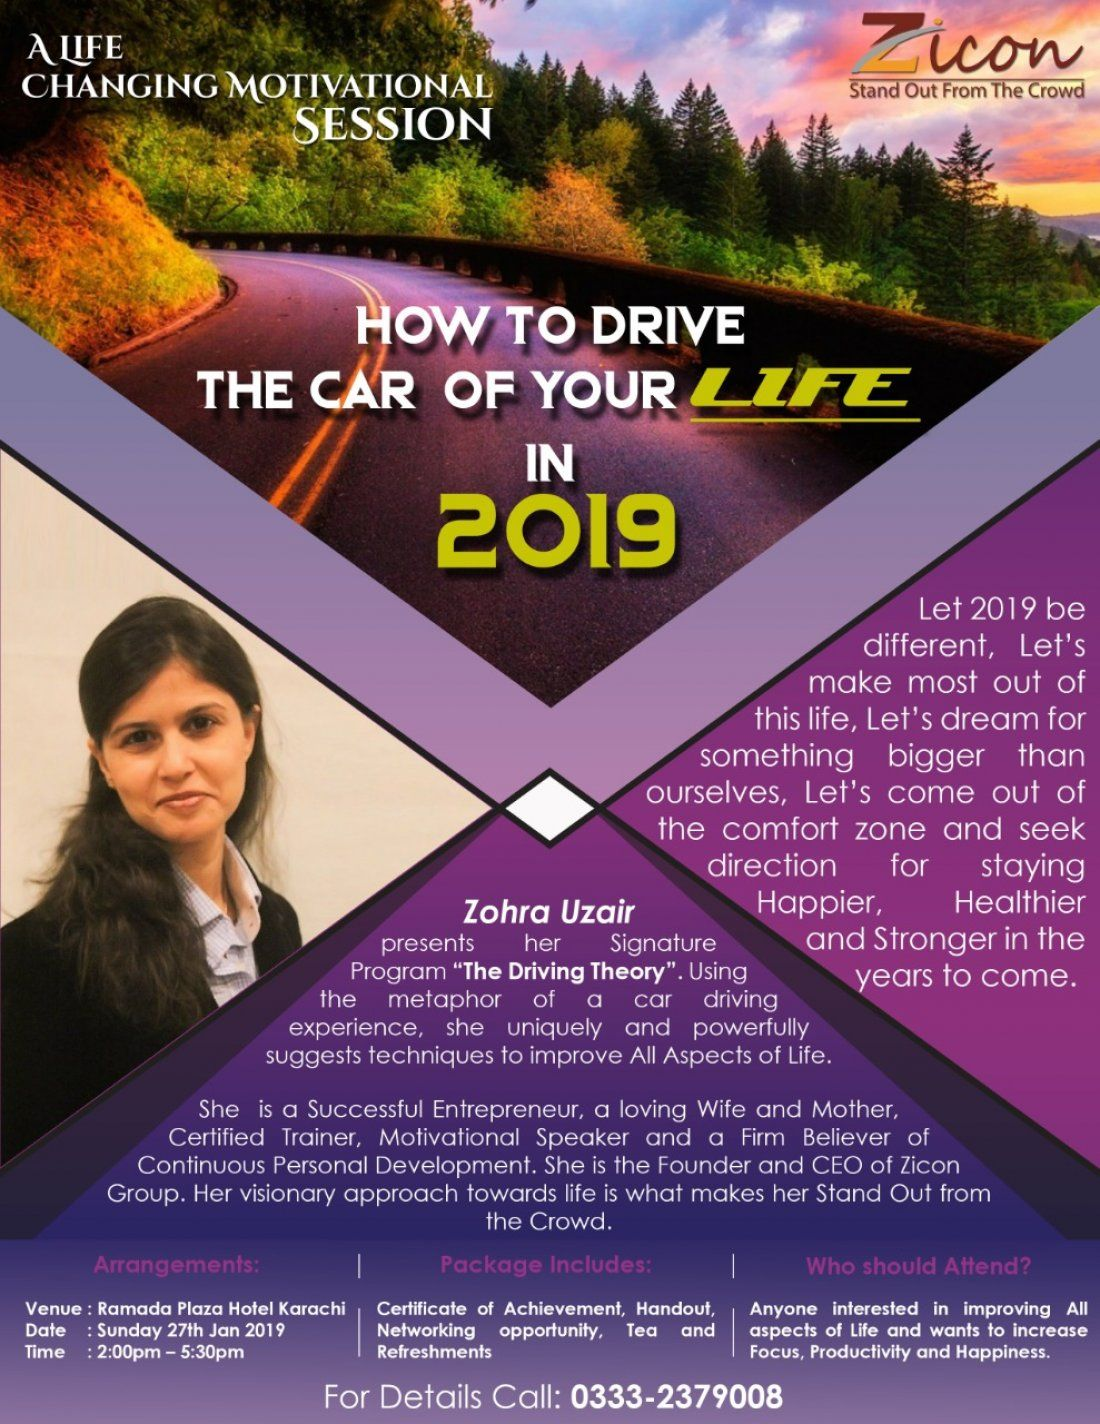 How to Drive the Car of Your Life in 2019